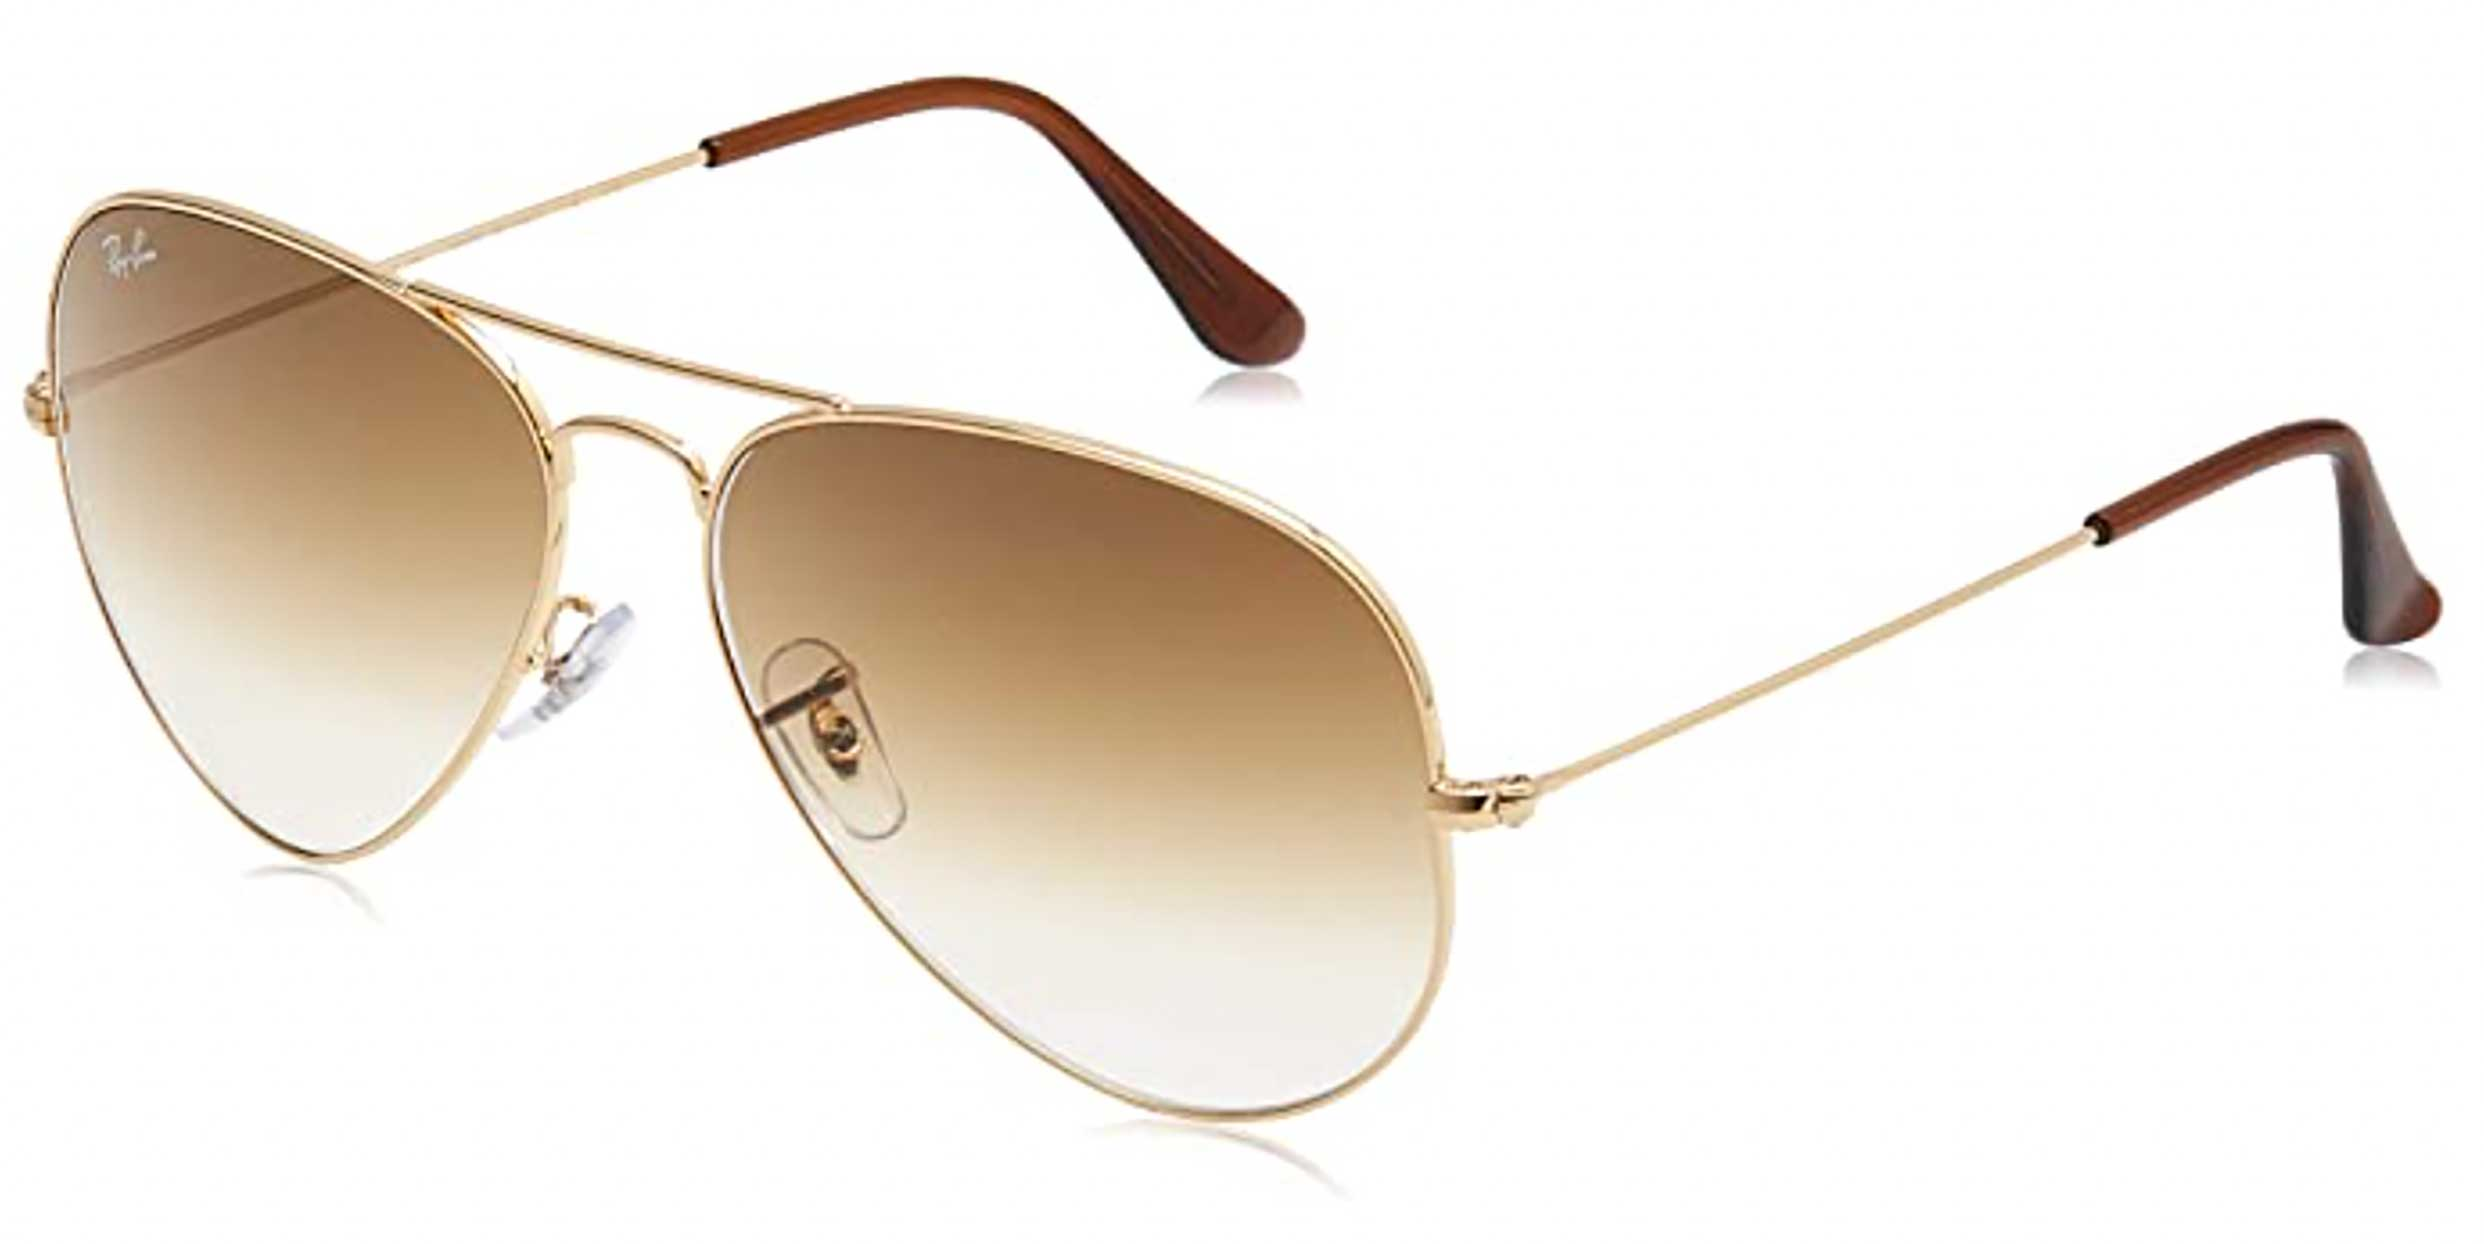 Ray-Ban Classic Gradient Aviator Sunglasses